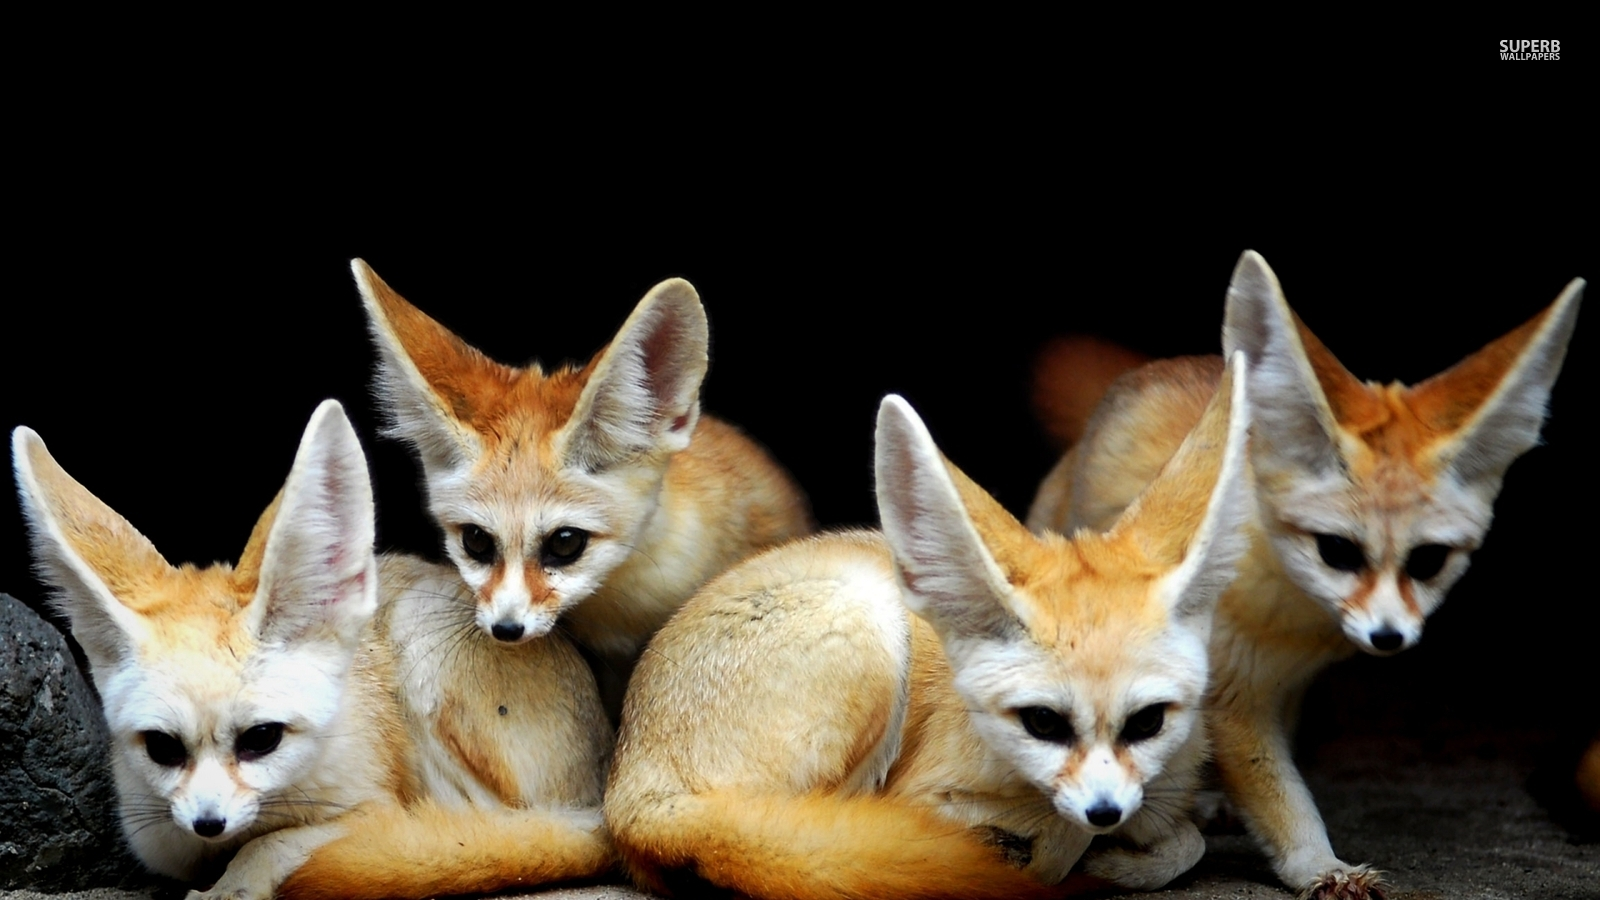 Foxes Images Fennec Foxes Hd Fond D 233 Cran And Background